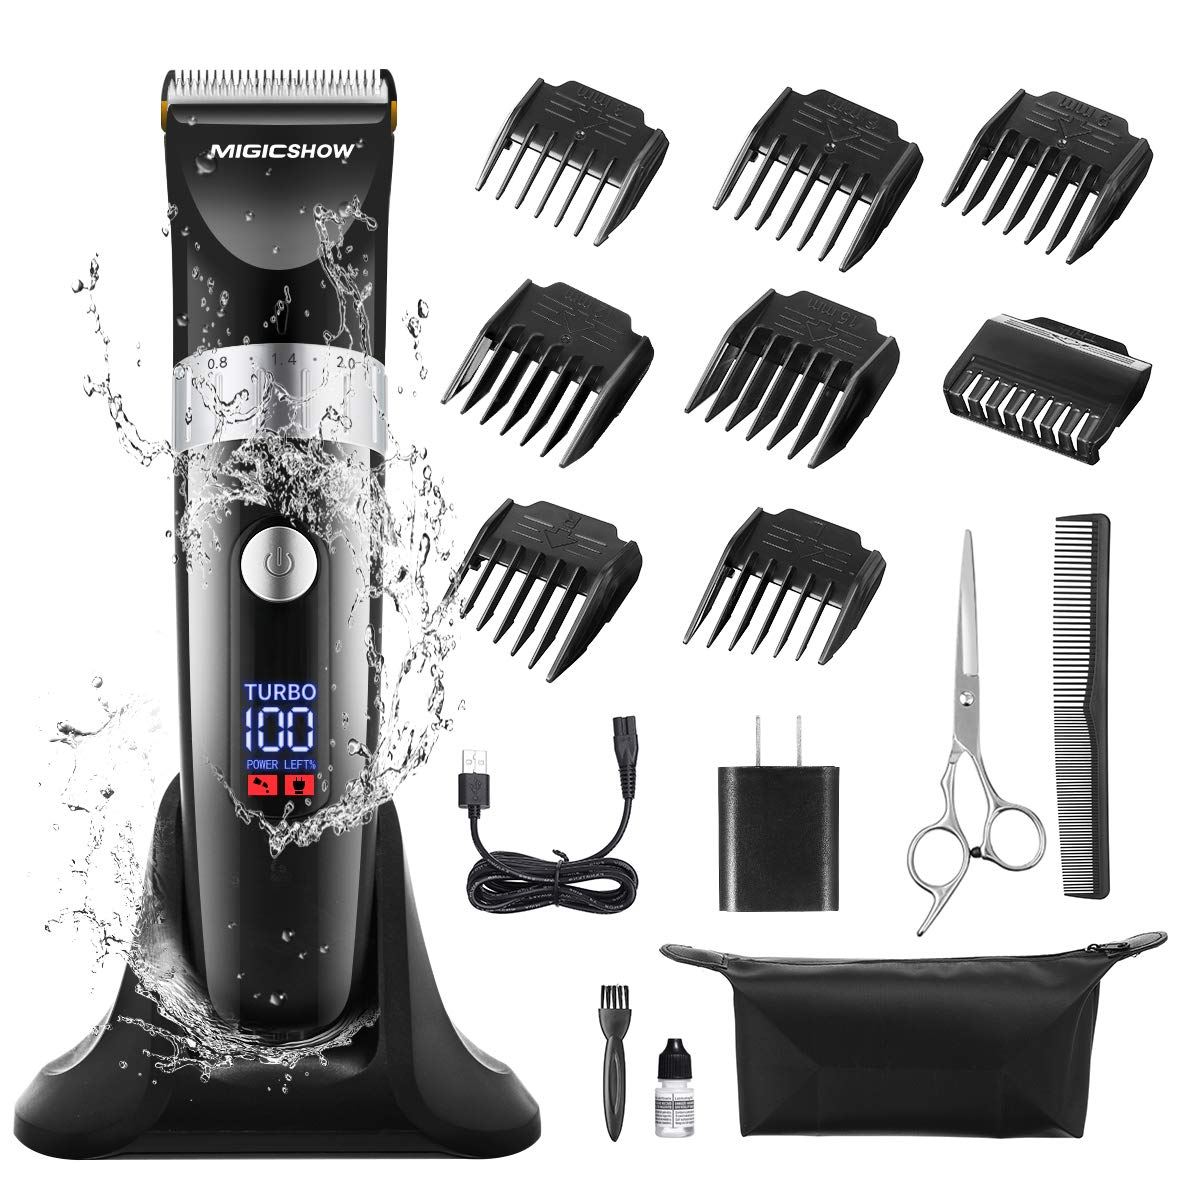 Hair Clippers for men, MIGICSHOW Cordless Hair Trimmer Beard Trimmer professional Hair Cutting Kit Detail Men s Hair Grooming Kit Waterproof LED Display Application of 100-240V